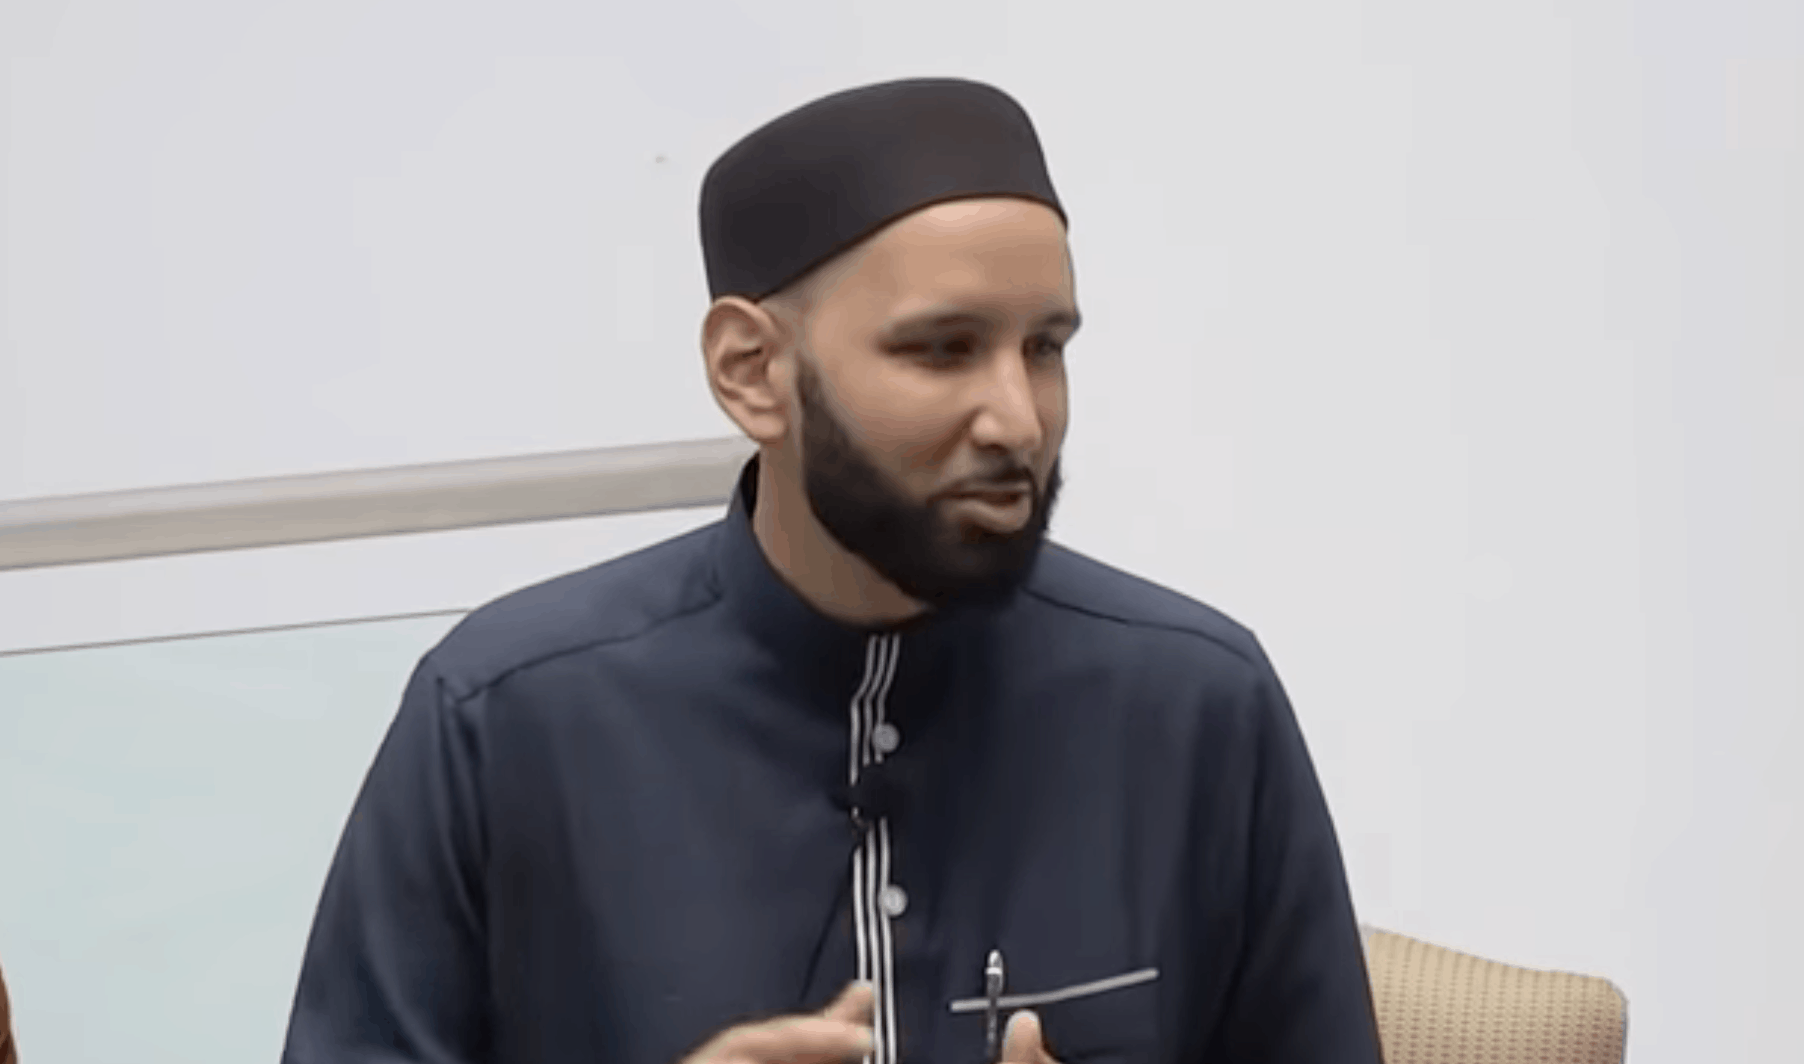 Omar Suleiman – The Du'a Taught to Only 1 Prophet